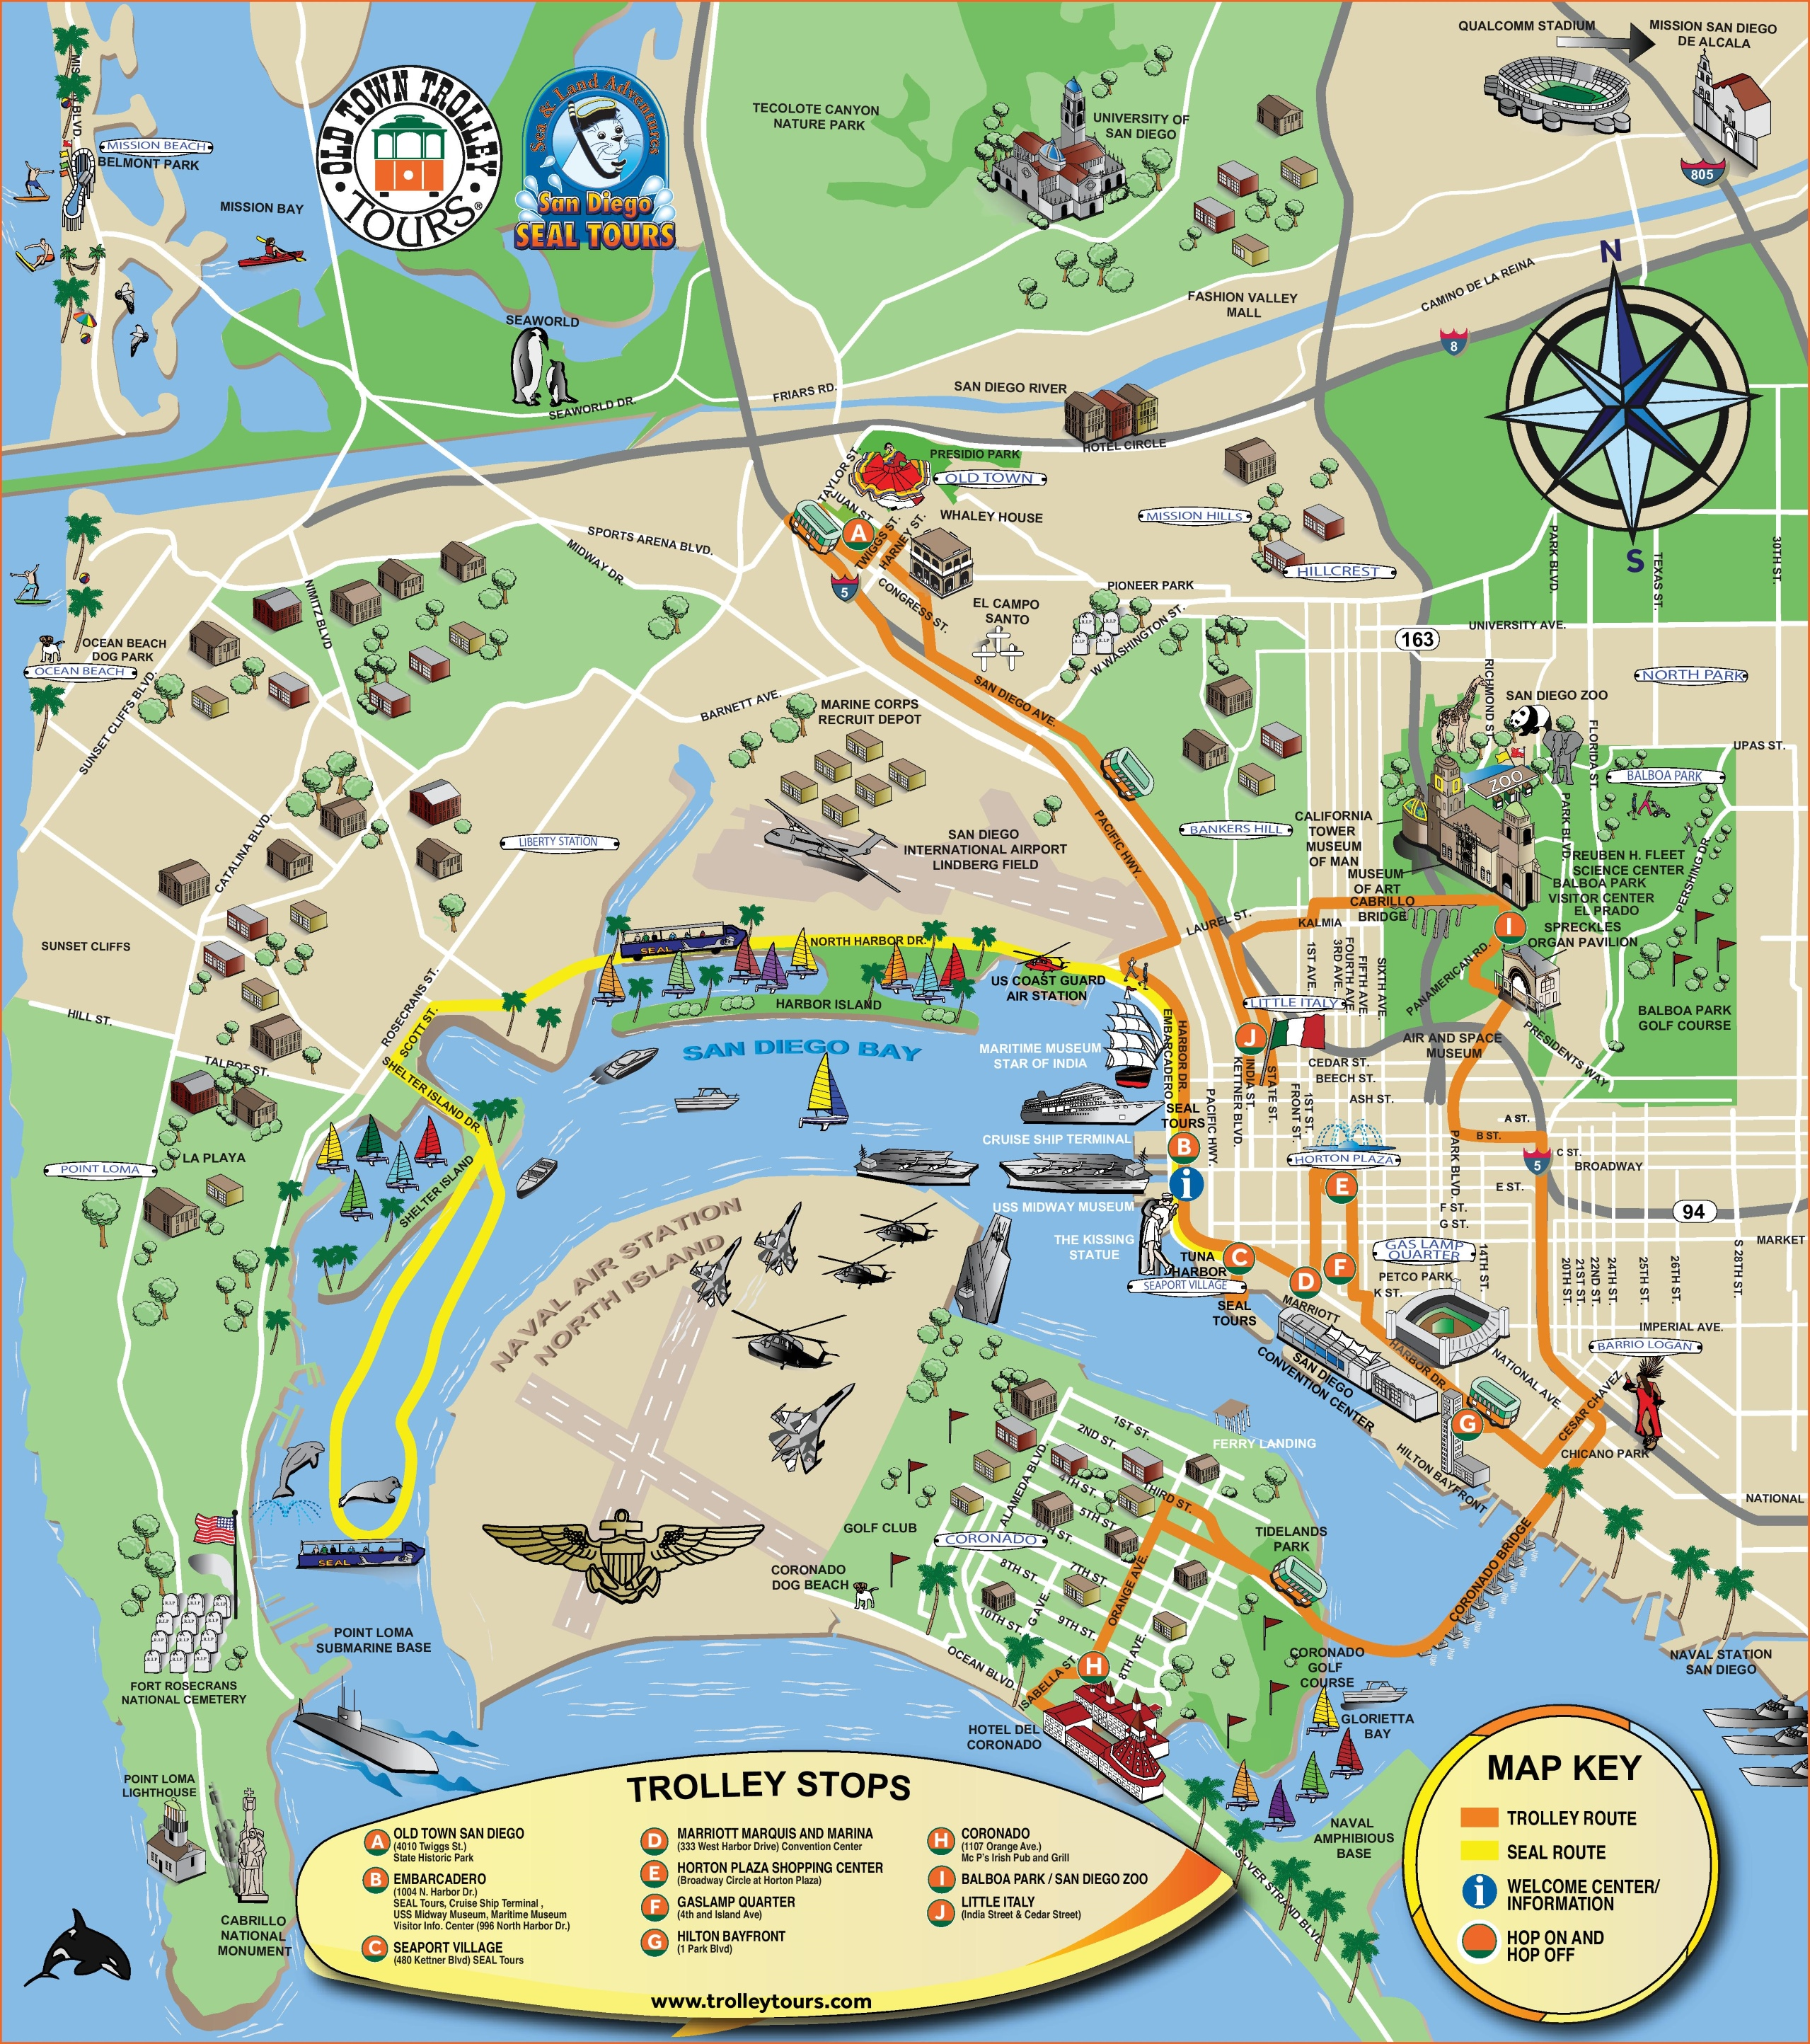 San Diego tourist attractions map – Kansas City Tourist Attractions Map